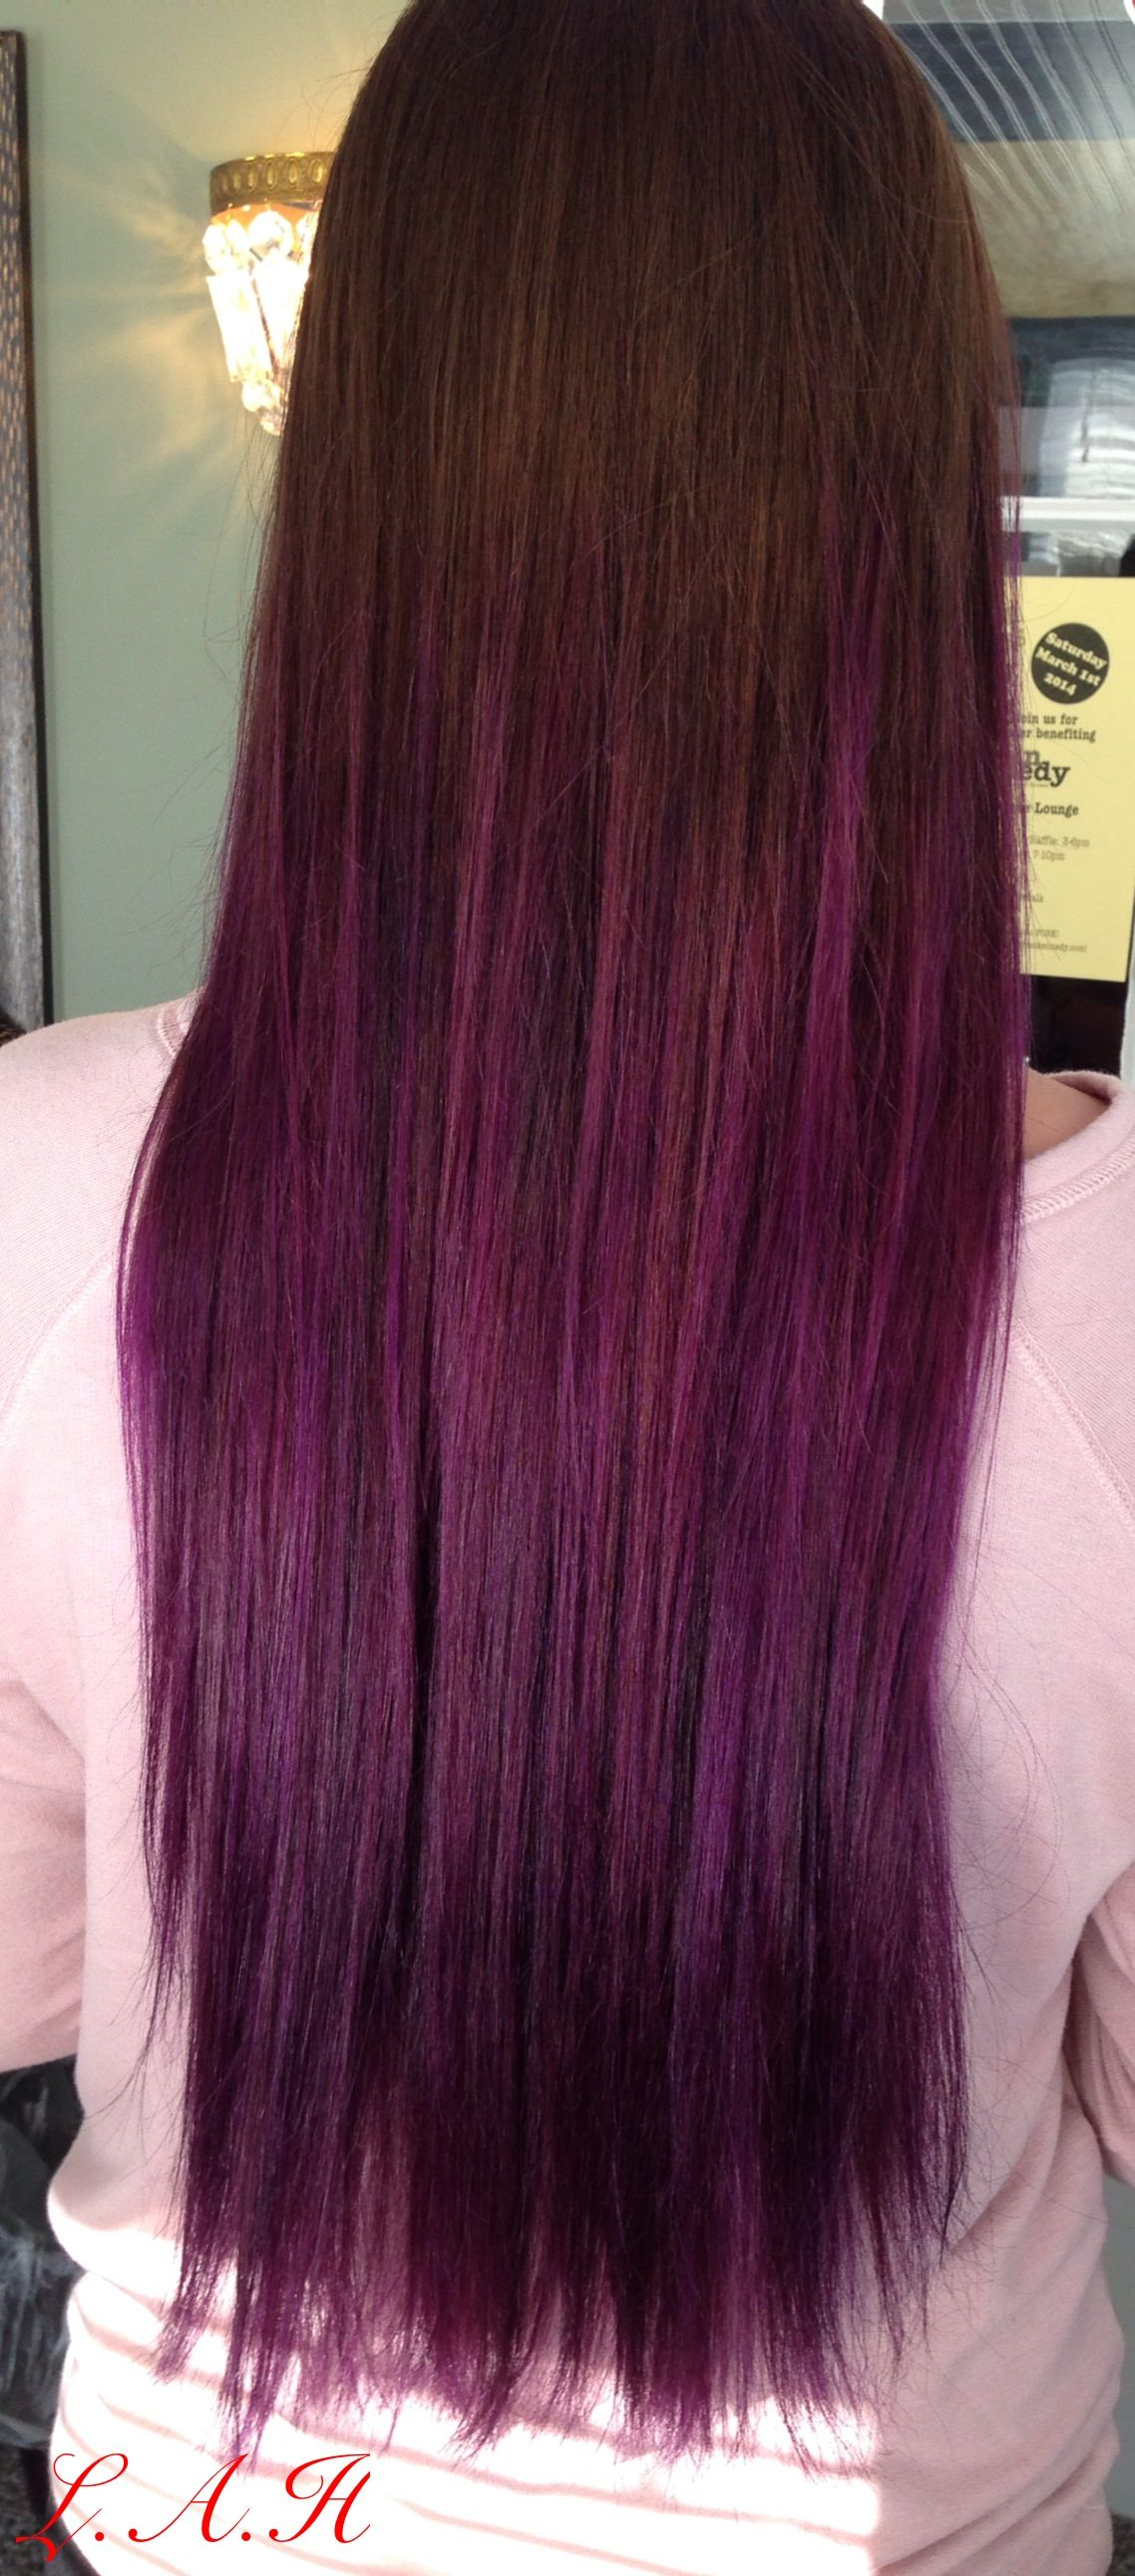 Dark to purple!! So fun